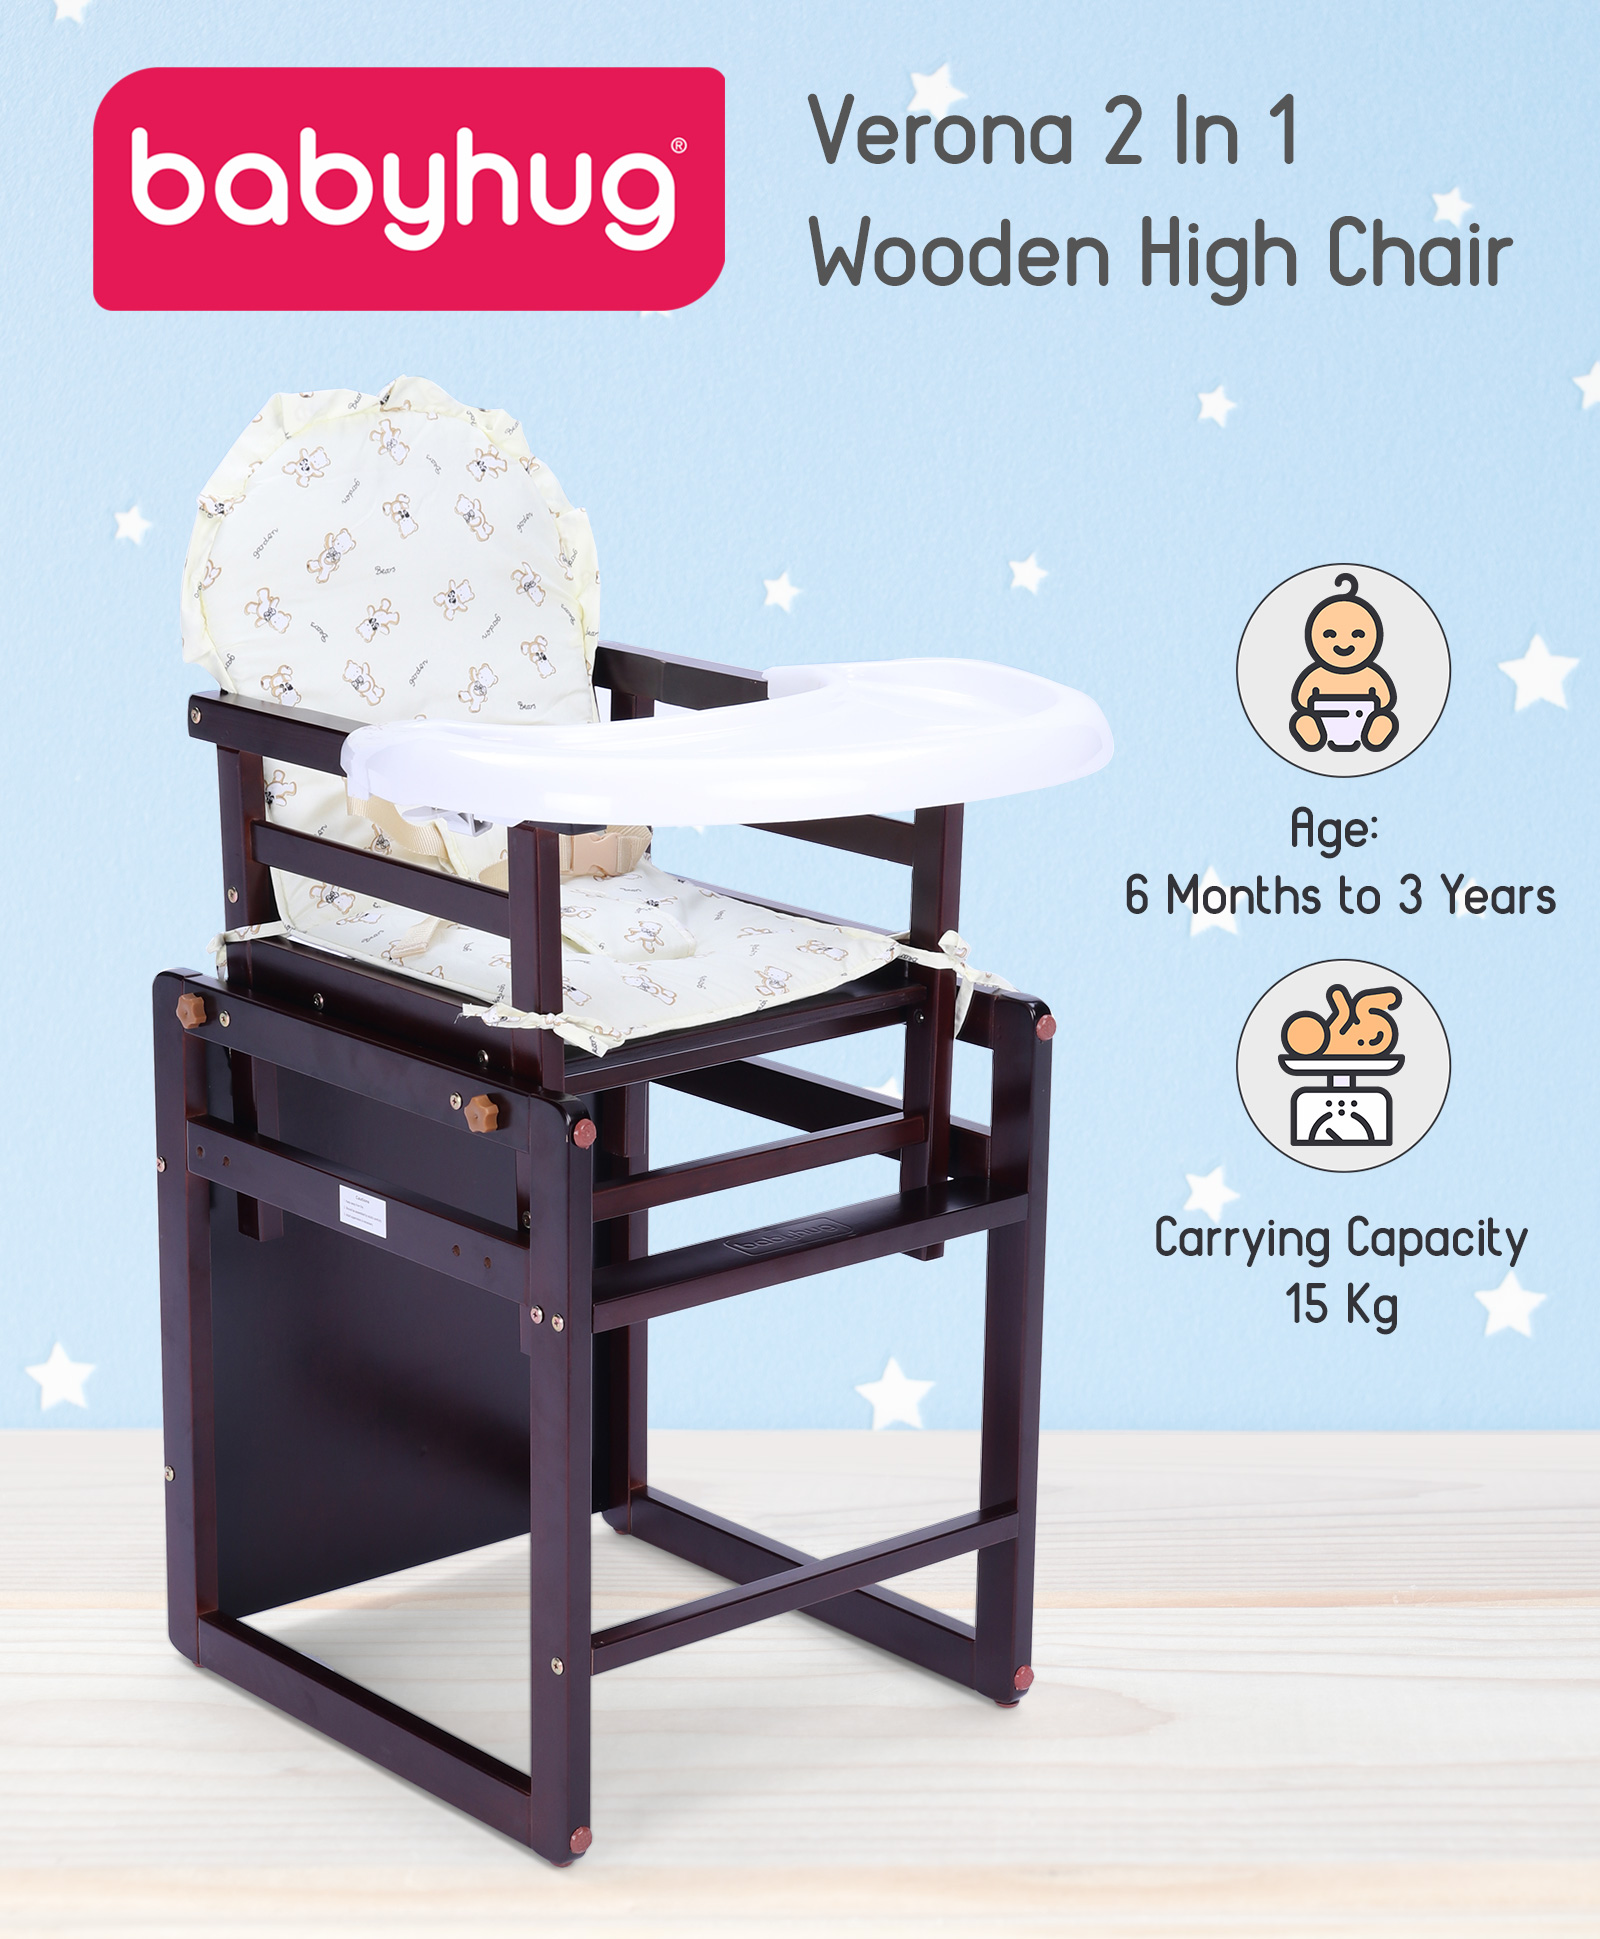 Will Chair Babyhug Verona 2 In 1 Wooden High Chair Dark Brown Online In India Buy At Best Price From Firstcry 1694307